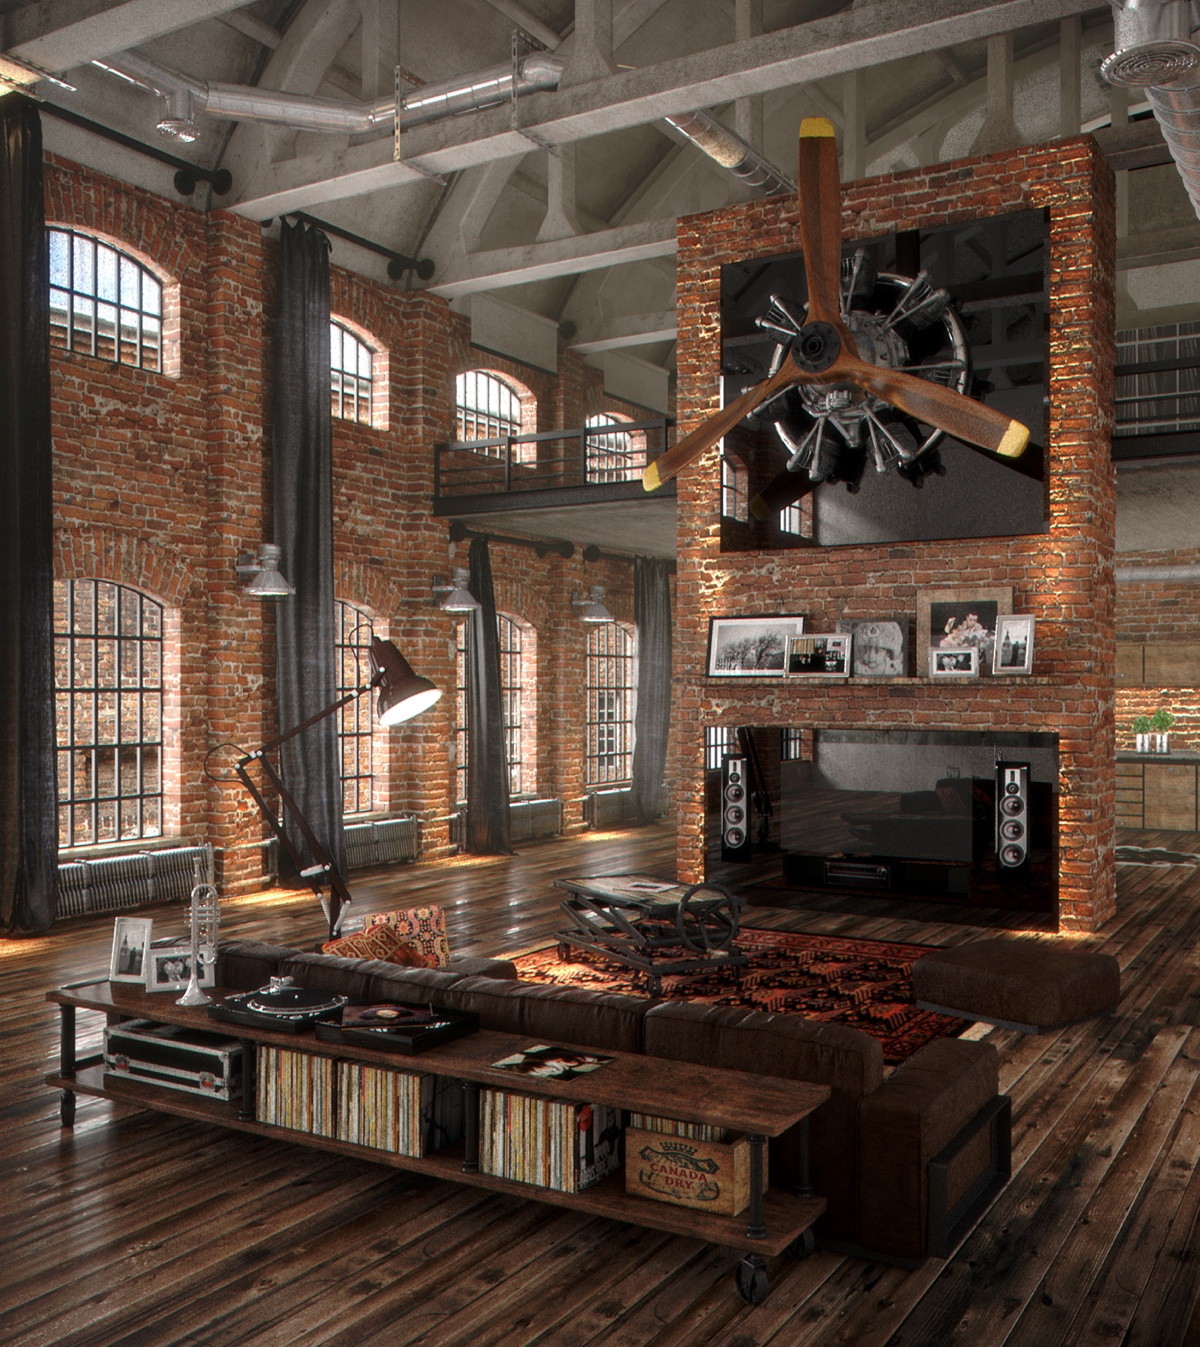 15 Amazing Interior Design Ideas For Modern Loft: 40 Incredible Lofts That Push Boundaries